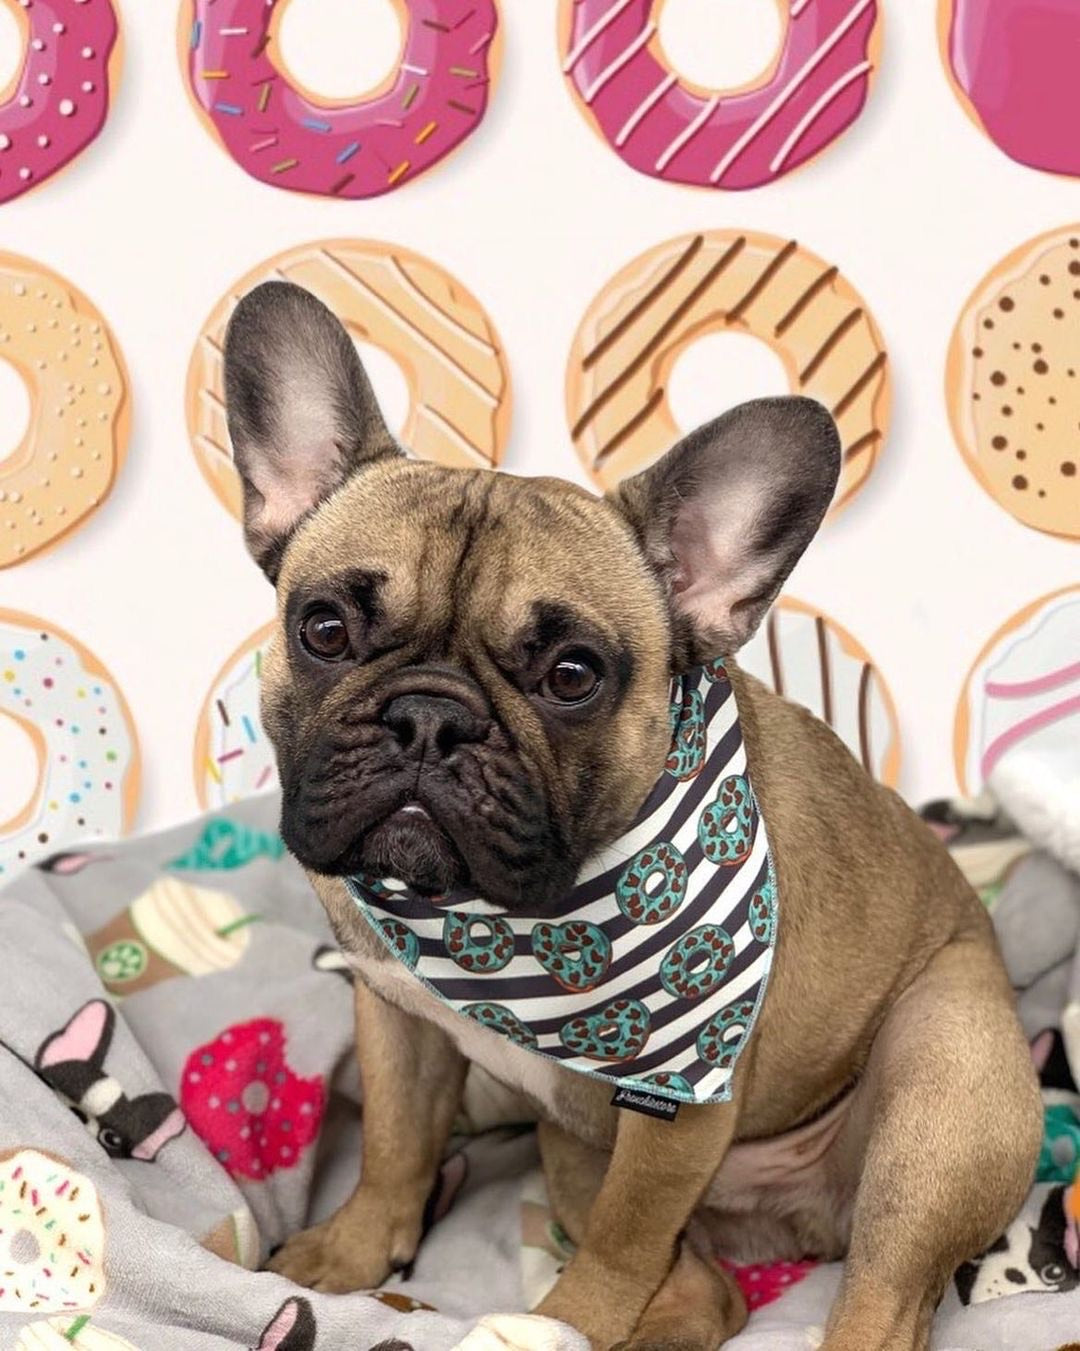 Frenchiestore Dog Cooling Bandana |  Frenchie Love in Teal, Frenchie Dog, French Bulldog pet products